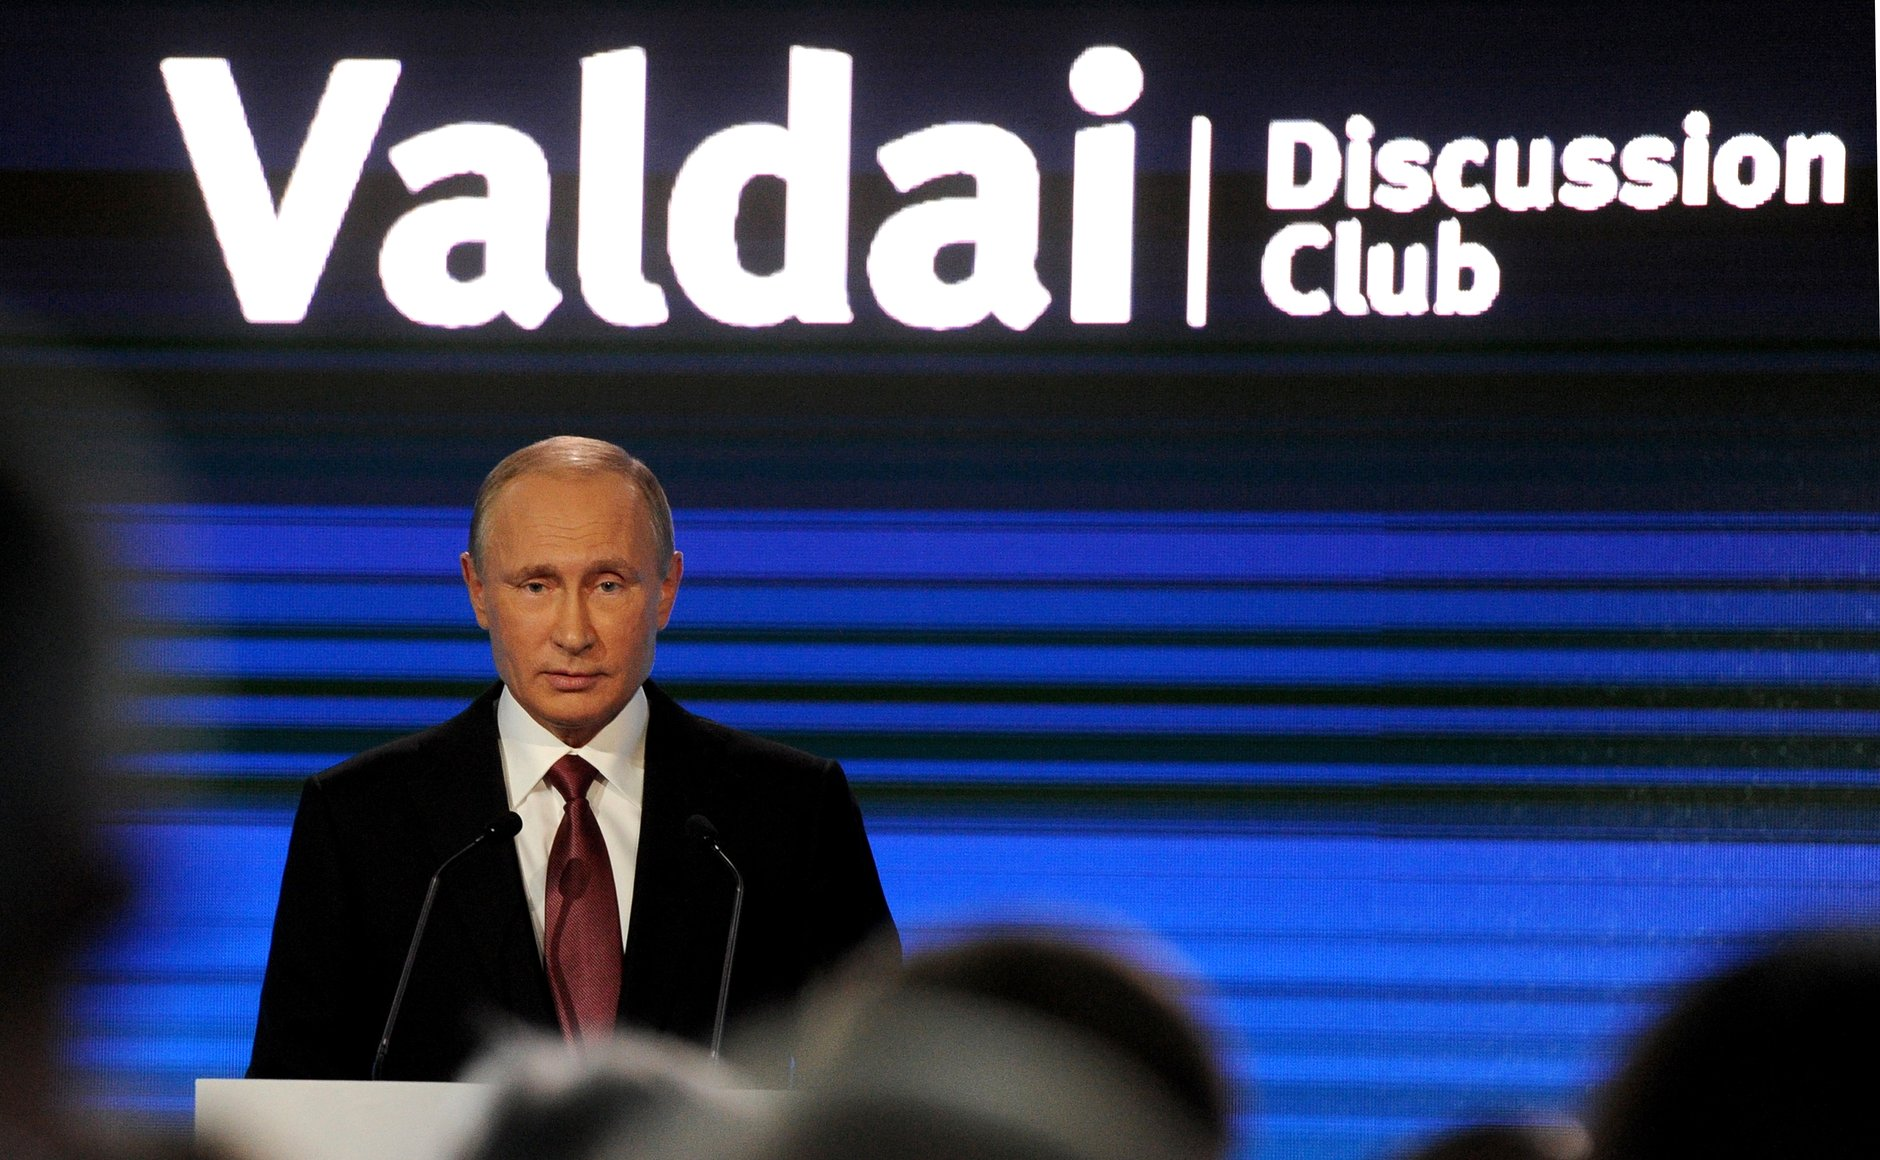 Putin At The Valdai Club: 'Does Anyone Seriously Imagine That Russia Can Somehow Influence The American People's Choice? America Is Not Some Kind Of 'Banana Republic'... Do Correct Me If I Am Wrong'